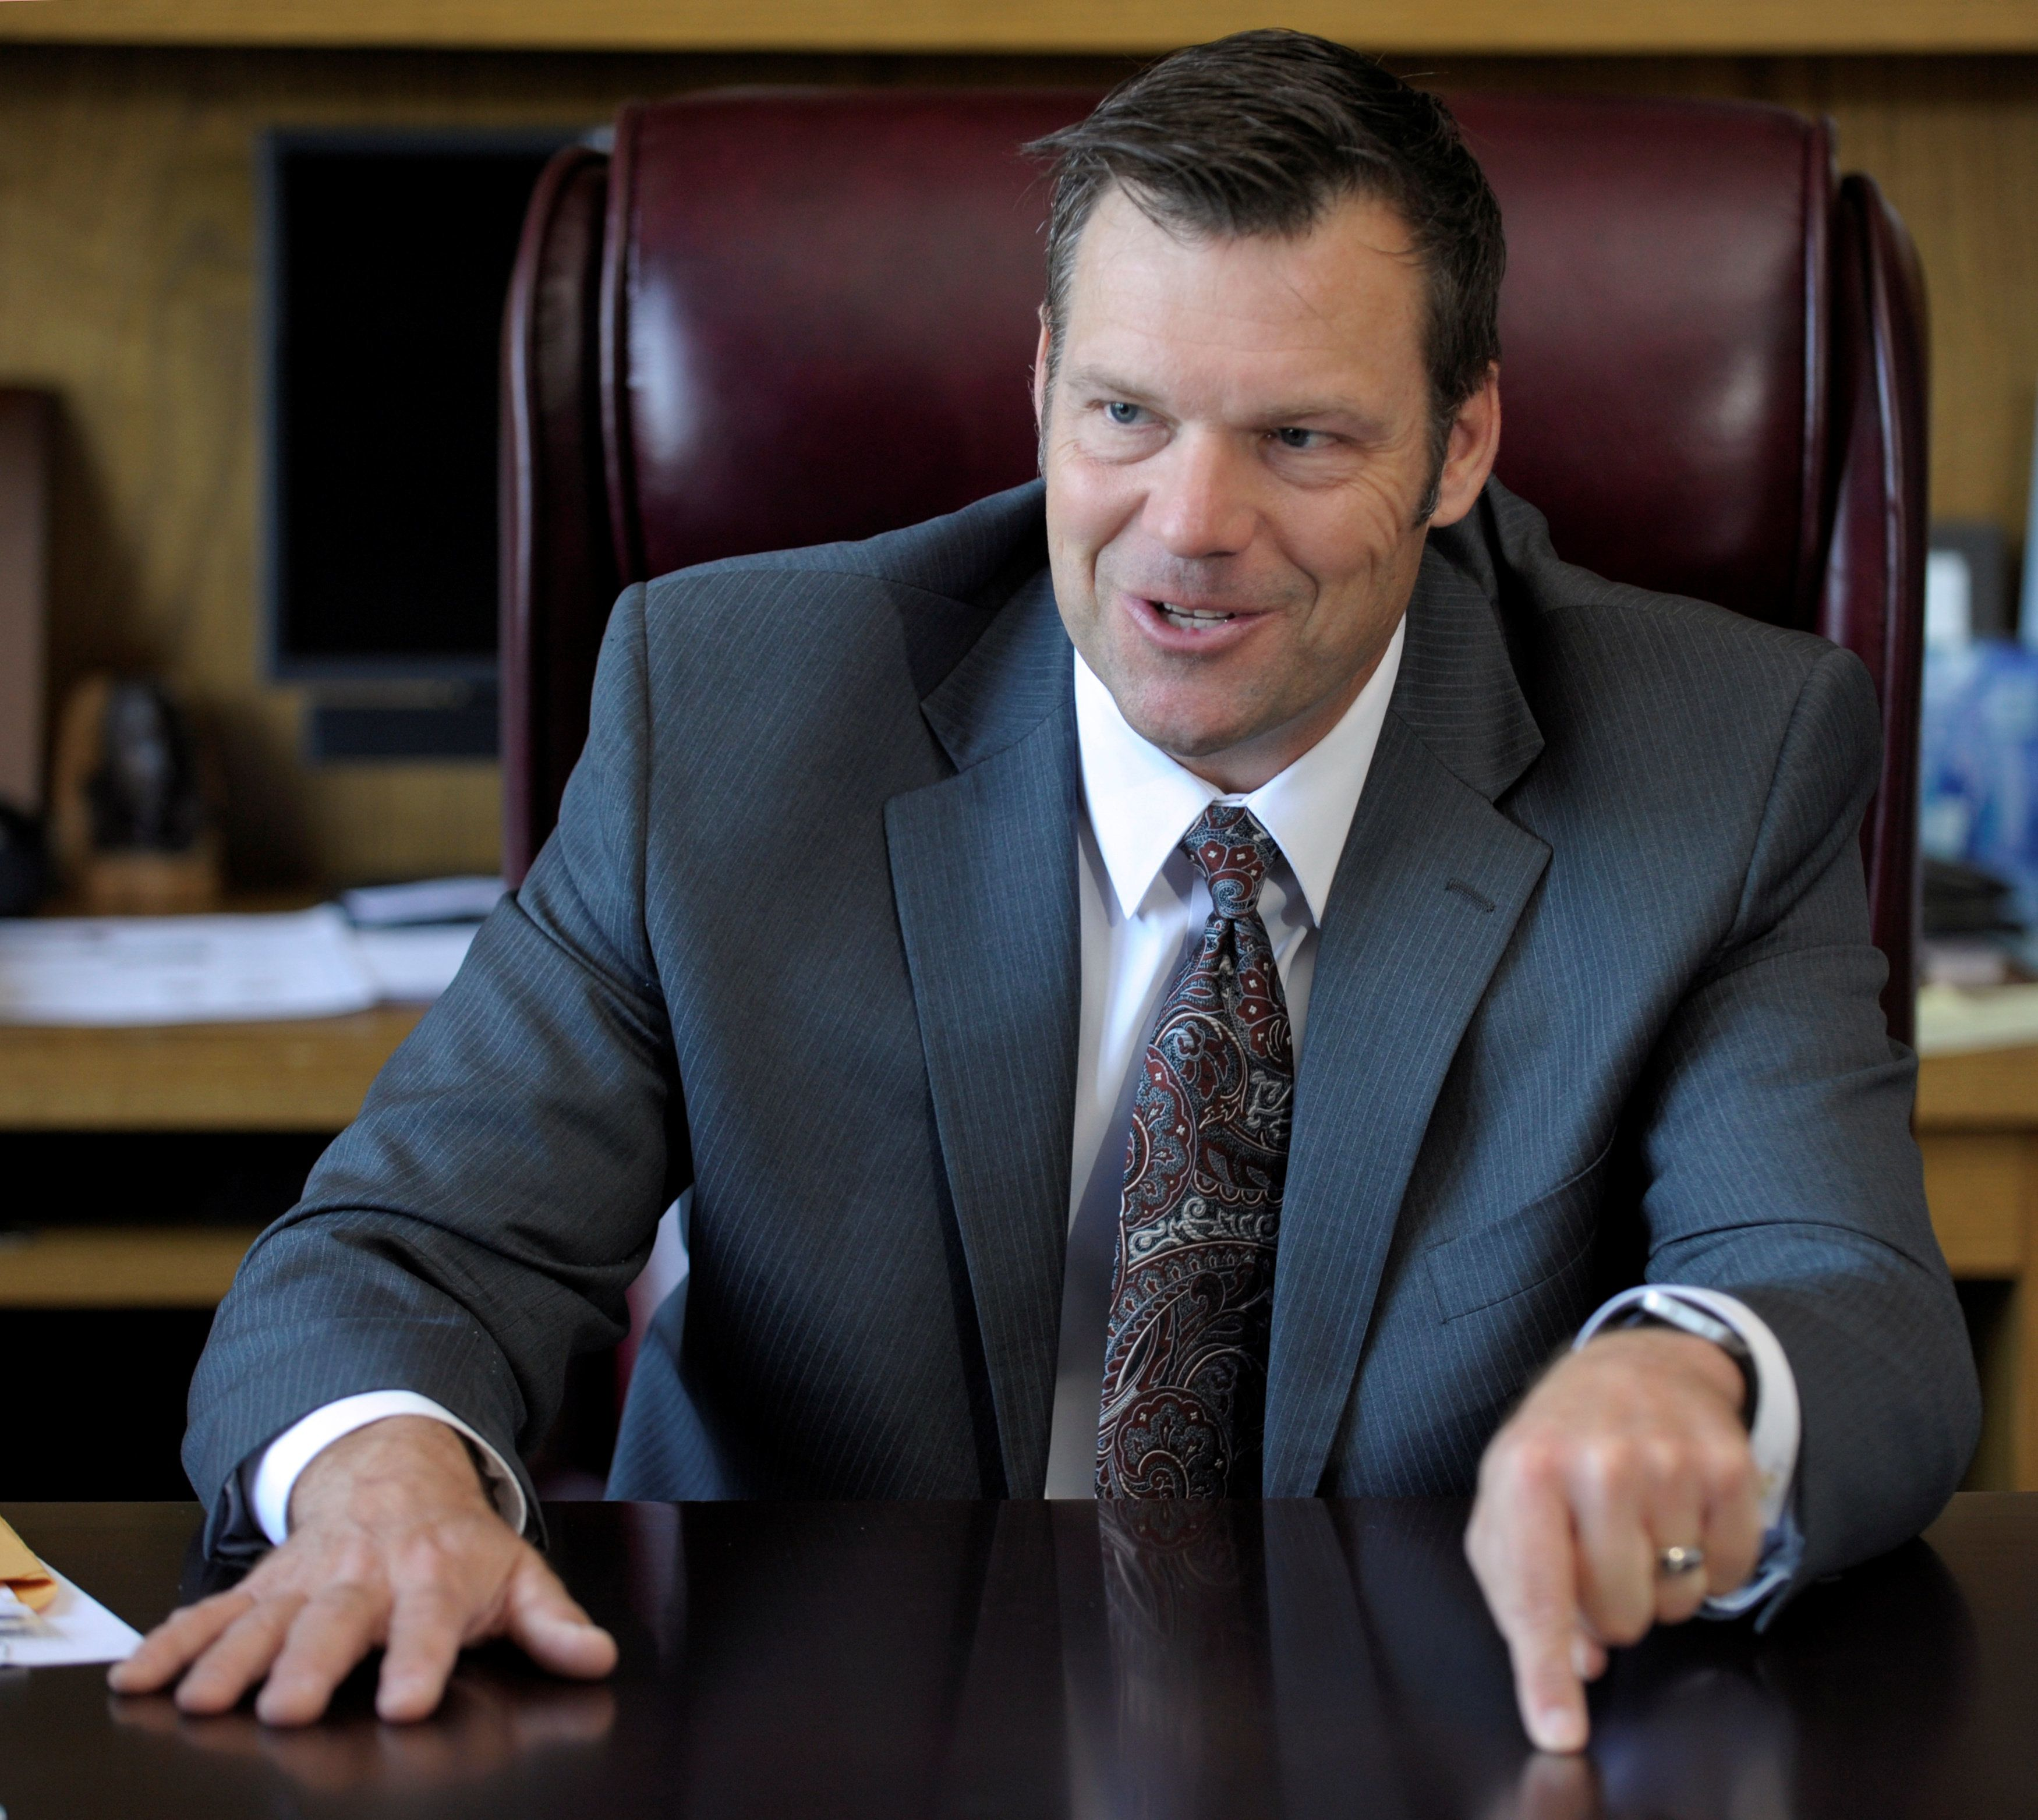 Kansas Secretary of State Kris Kobach talks about the Kansas voter ID law that he pushed to combat what he believes to be rampant voter fraud in the United States in his Topeka, Kansas, U.S., office May 12, 2016. REUTERS/Dave Kaup TPX IMAGES OF THE DAY